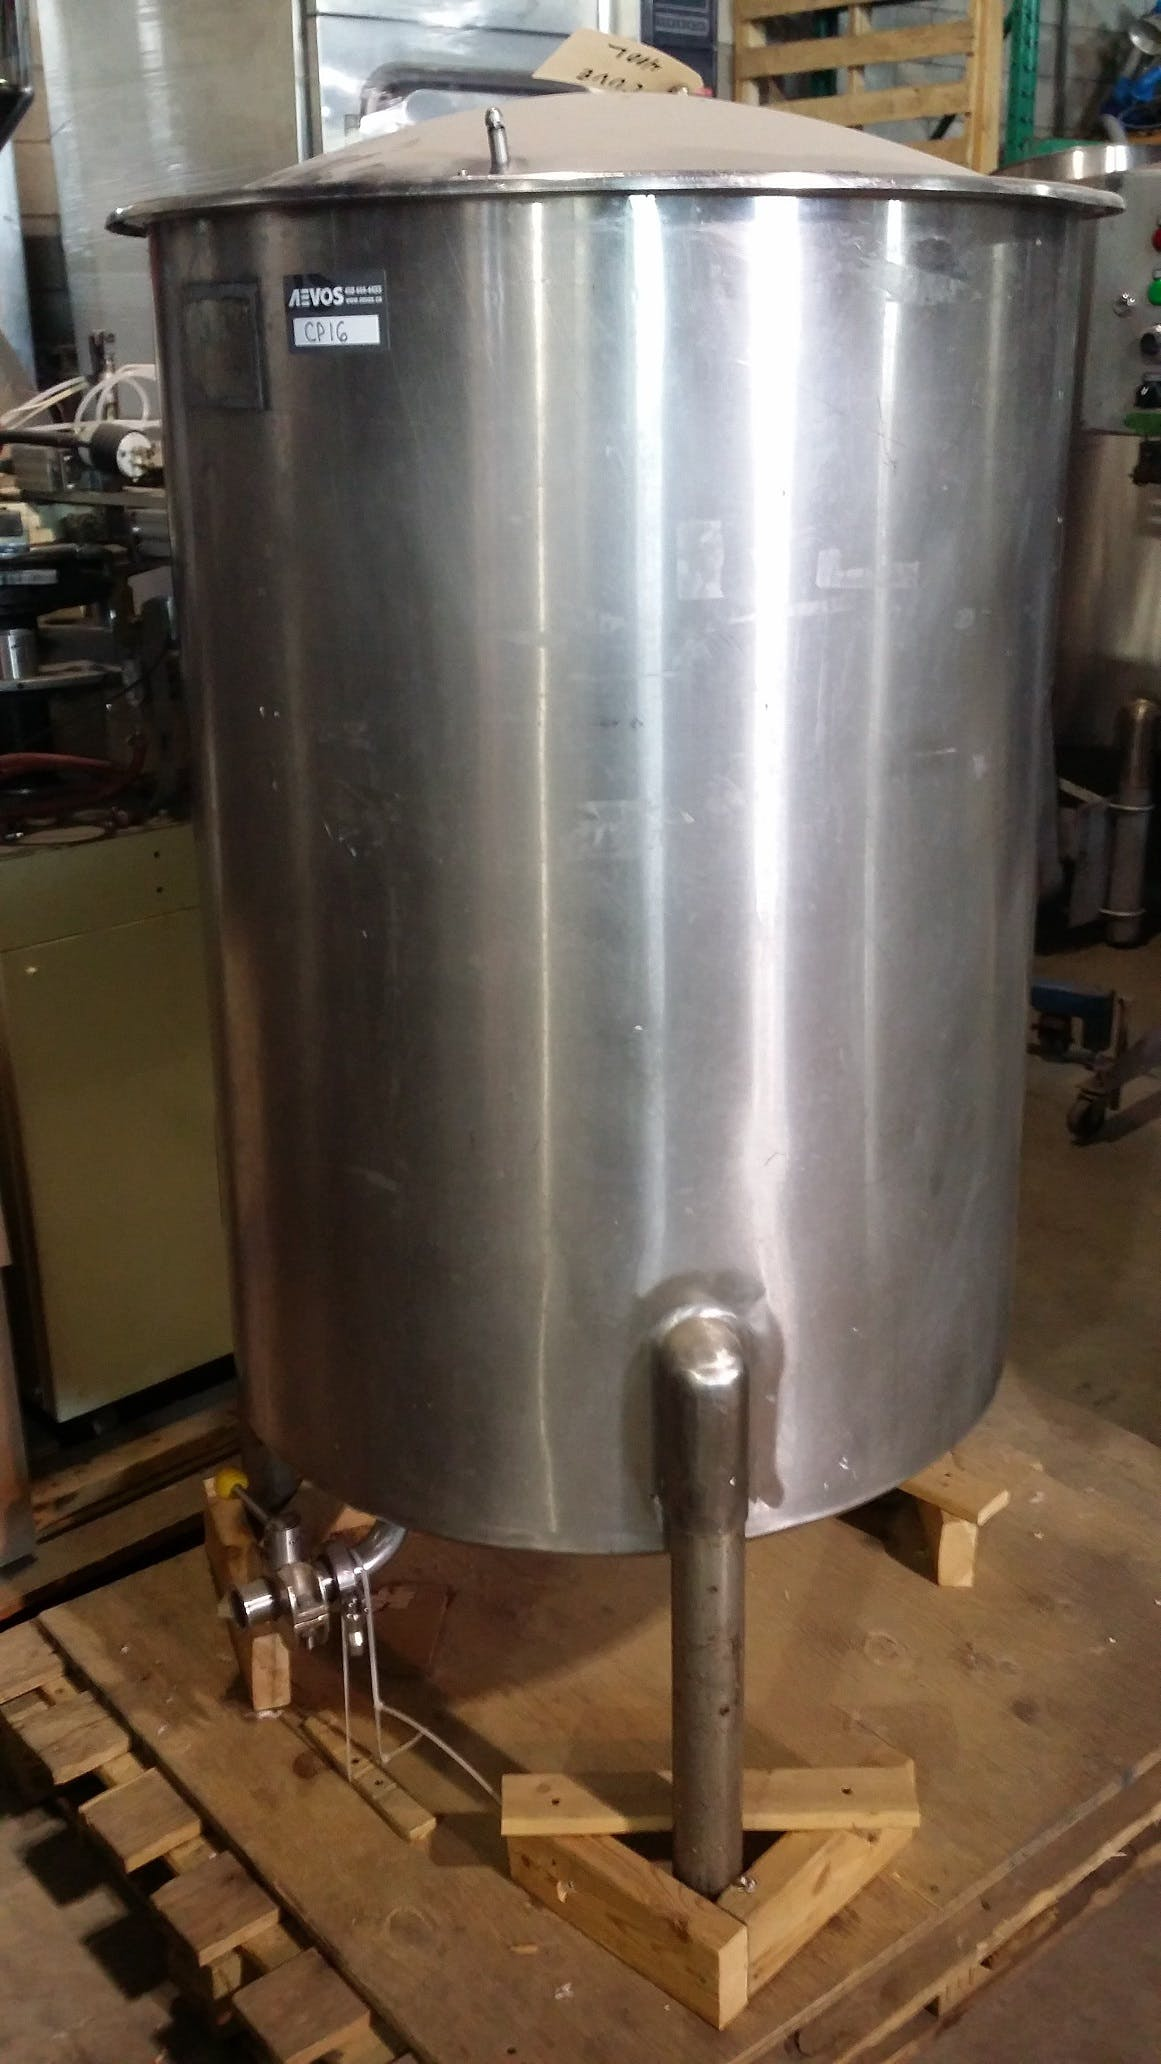 Stainless Steel single wall tank - 400 liters (105 gallons) Food tank sold by Aevos Equipment